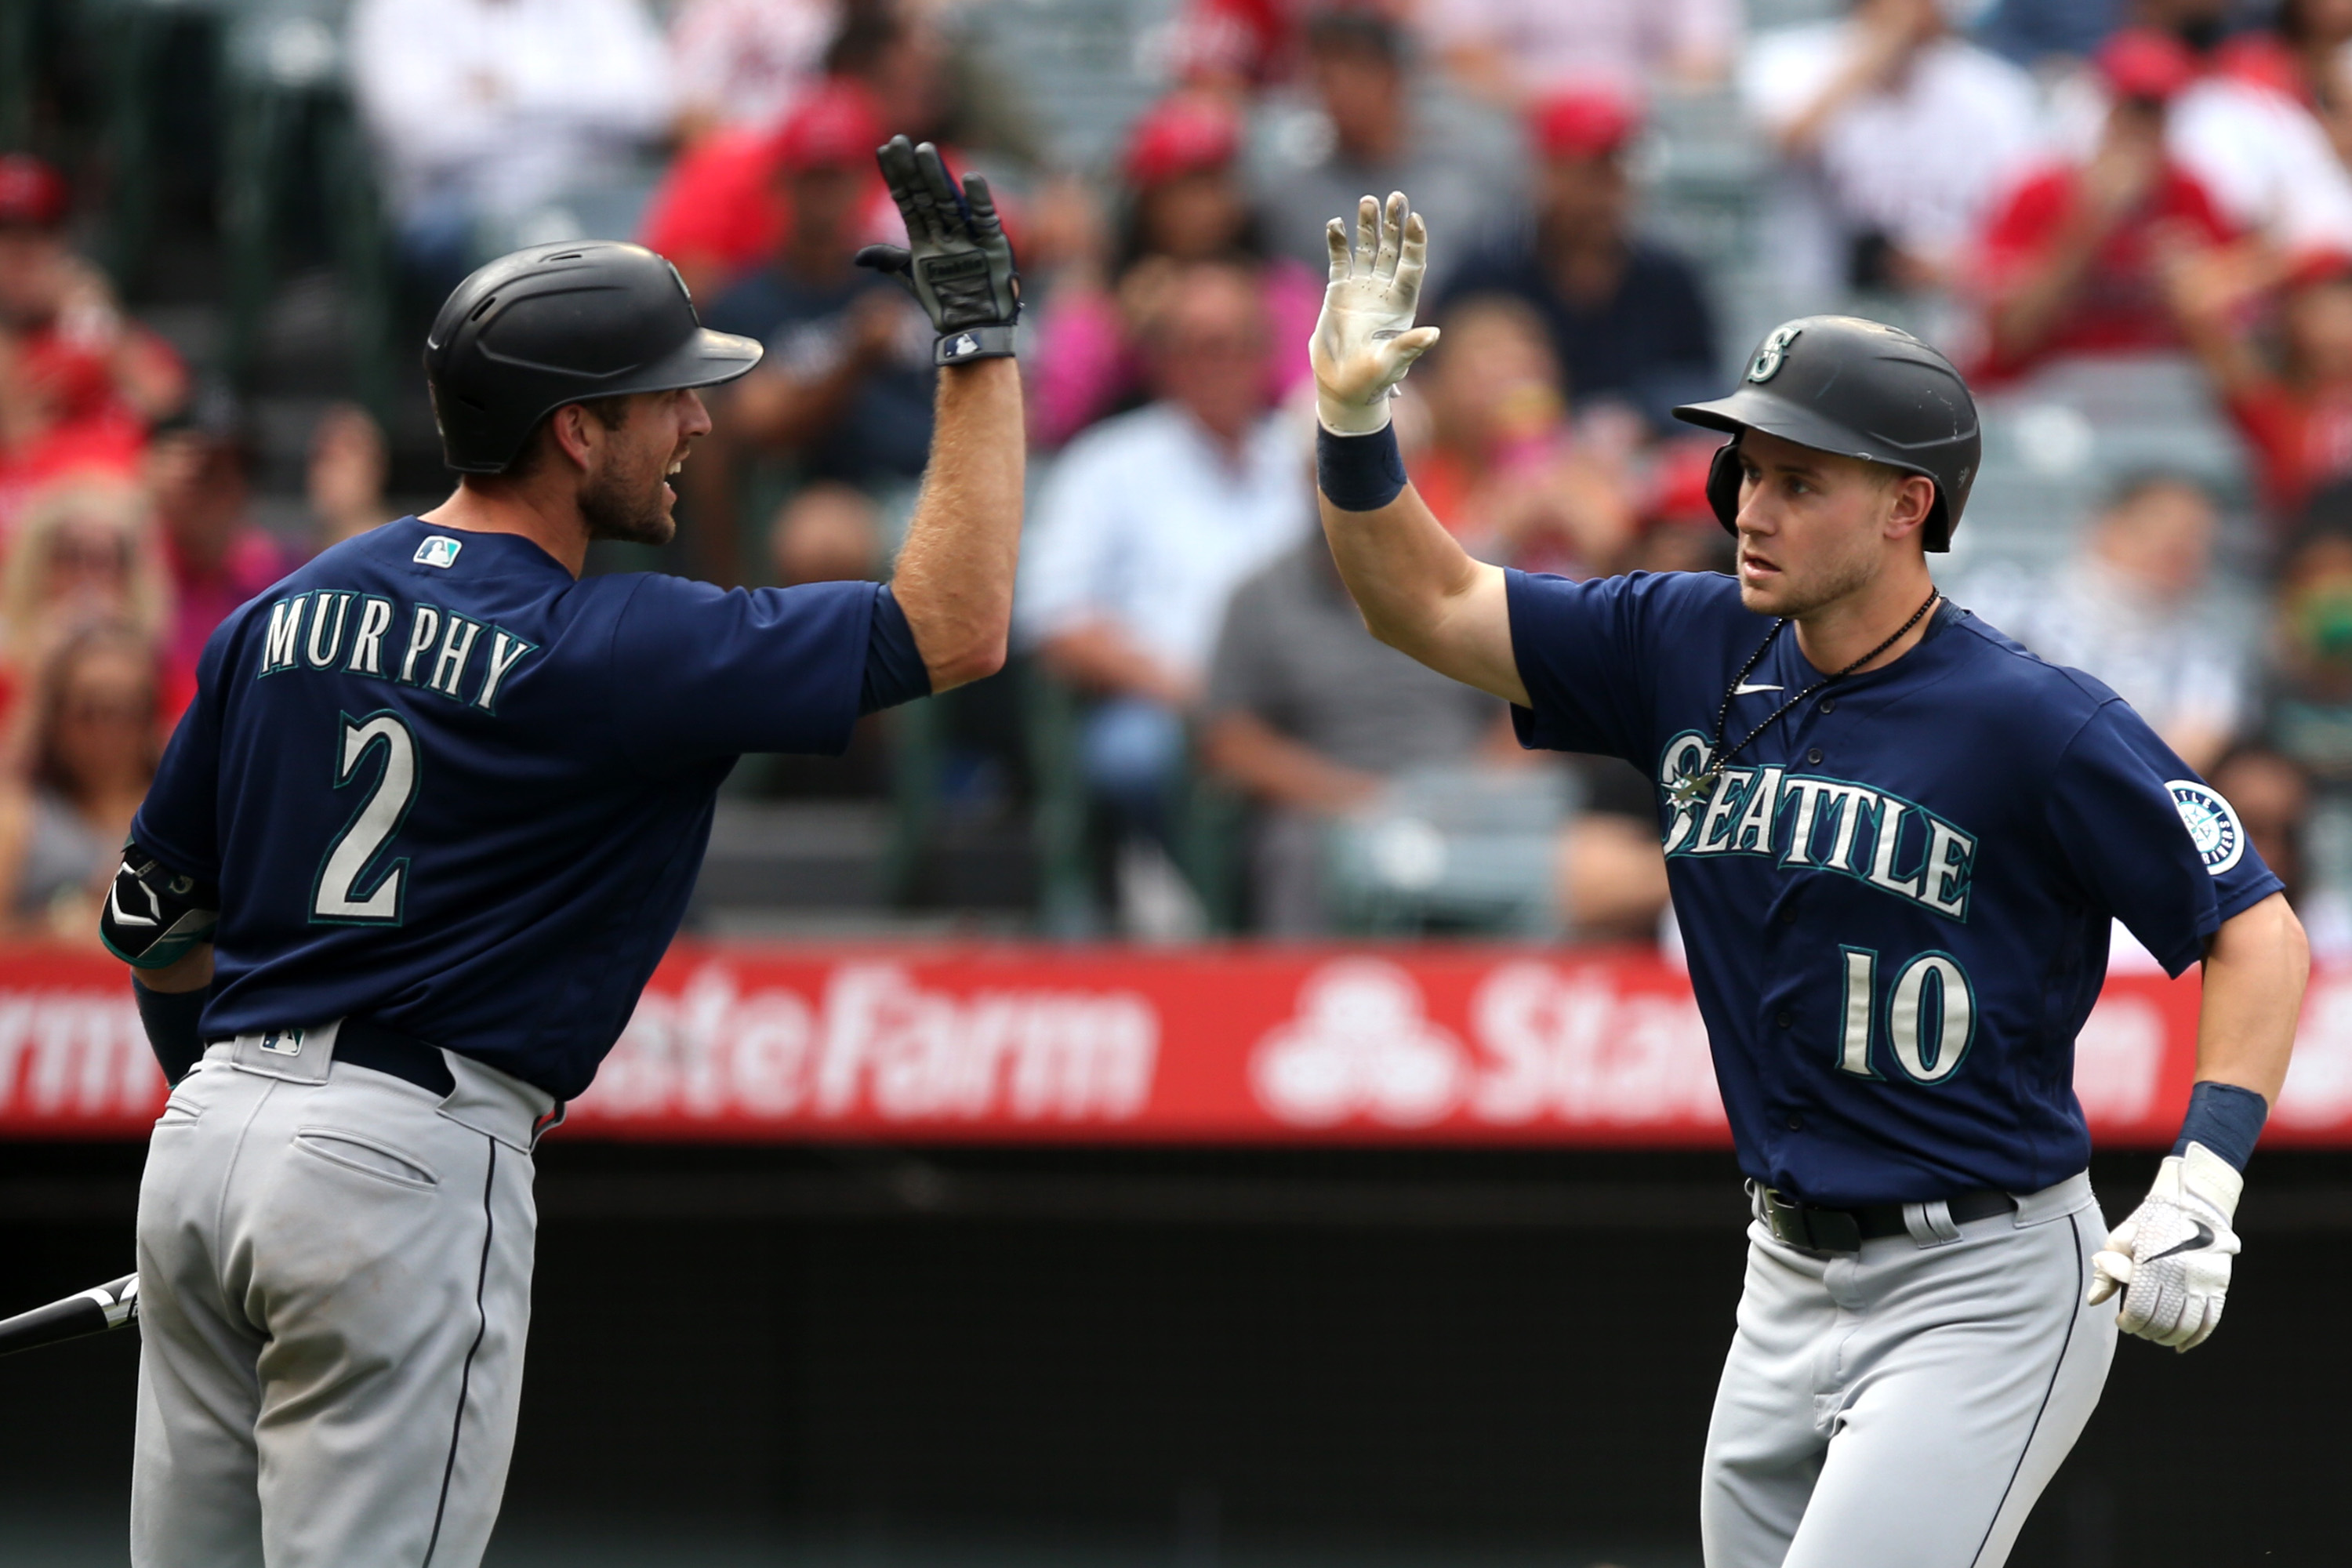 Tom Murphy #2 of the Seattle Mariners high-fives Jarred Kelenic #10 of the Seattle Mariners after Kelenic hit a home run in the seventh inning against the Los Angeles Angels at Angel Stadium of Anaheim on September 26, 2021 in Anaheim, California.